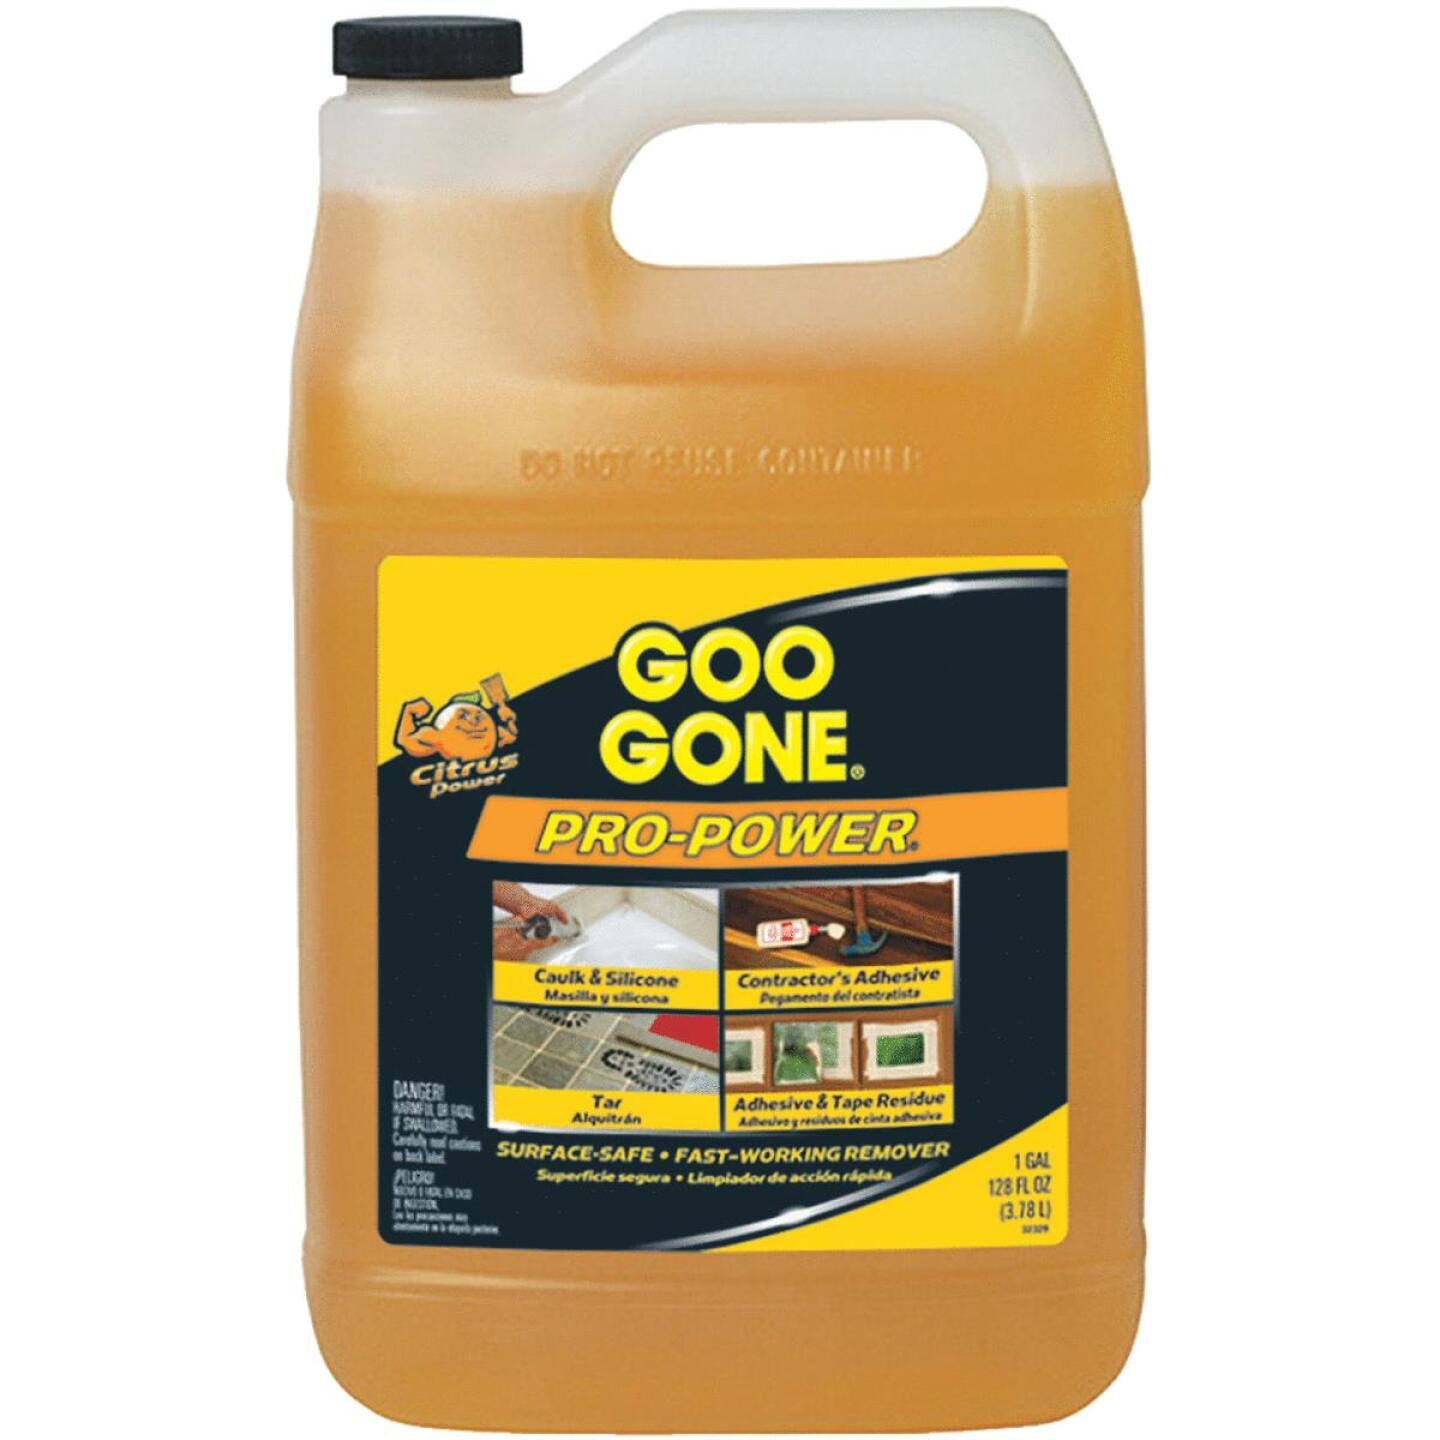 Goo Gone 1 Gal. Pro-Power Adhesive Remover Image 138